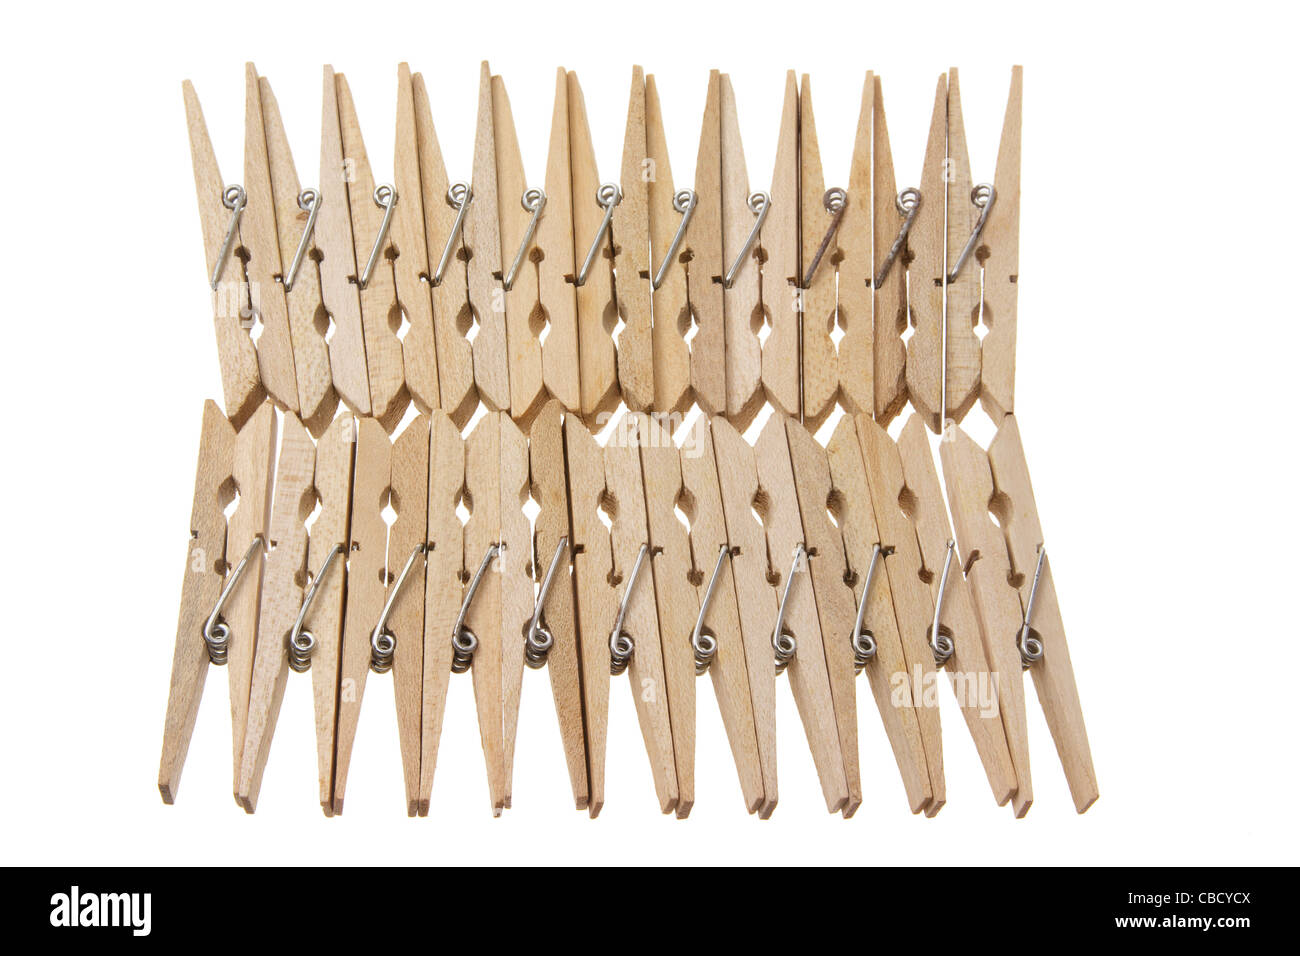 Clothes Pegs - Stock Image